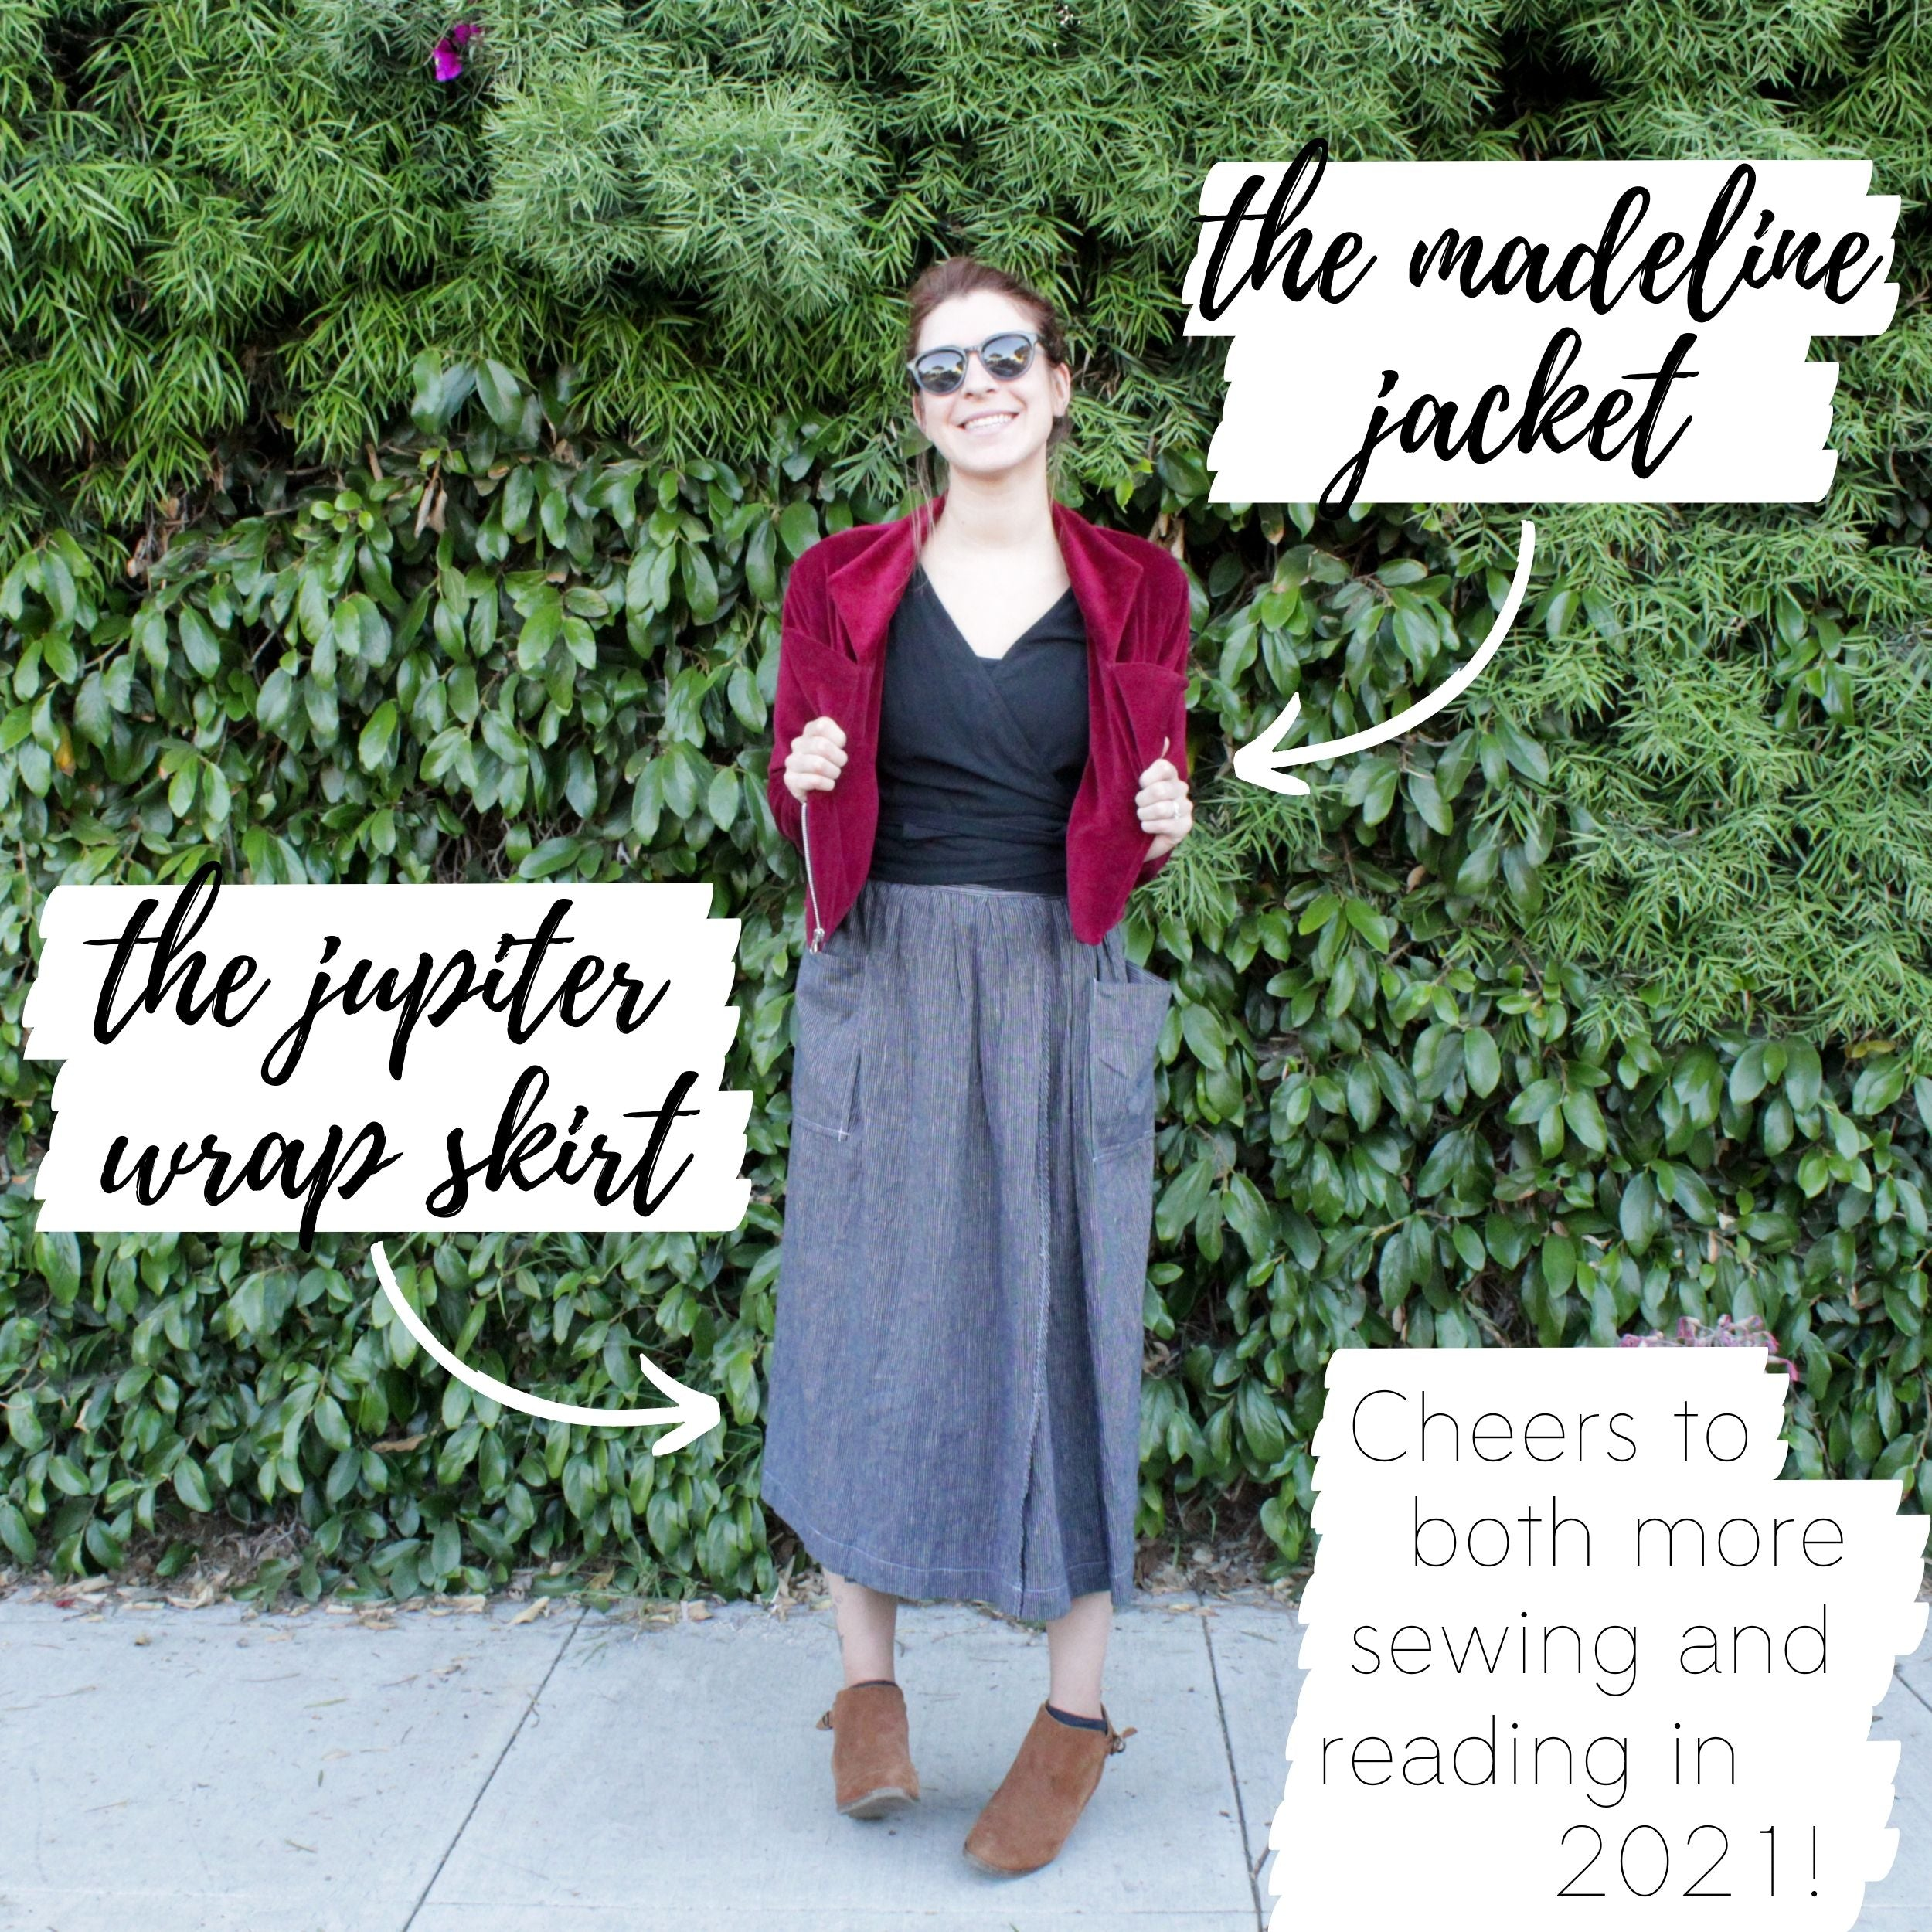 Favorite sewing projects of the year: Cheers to more sewing!